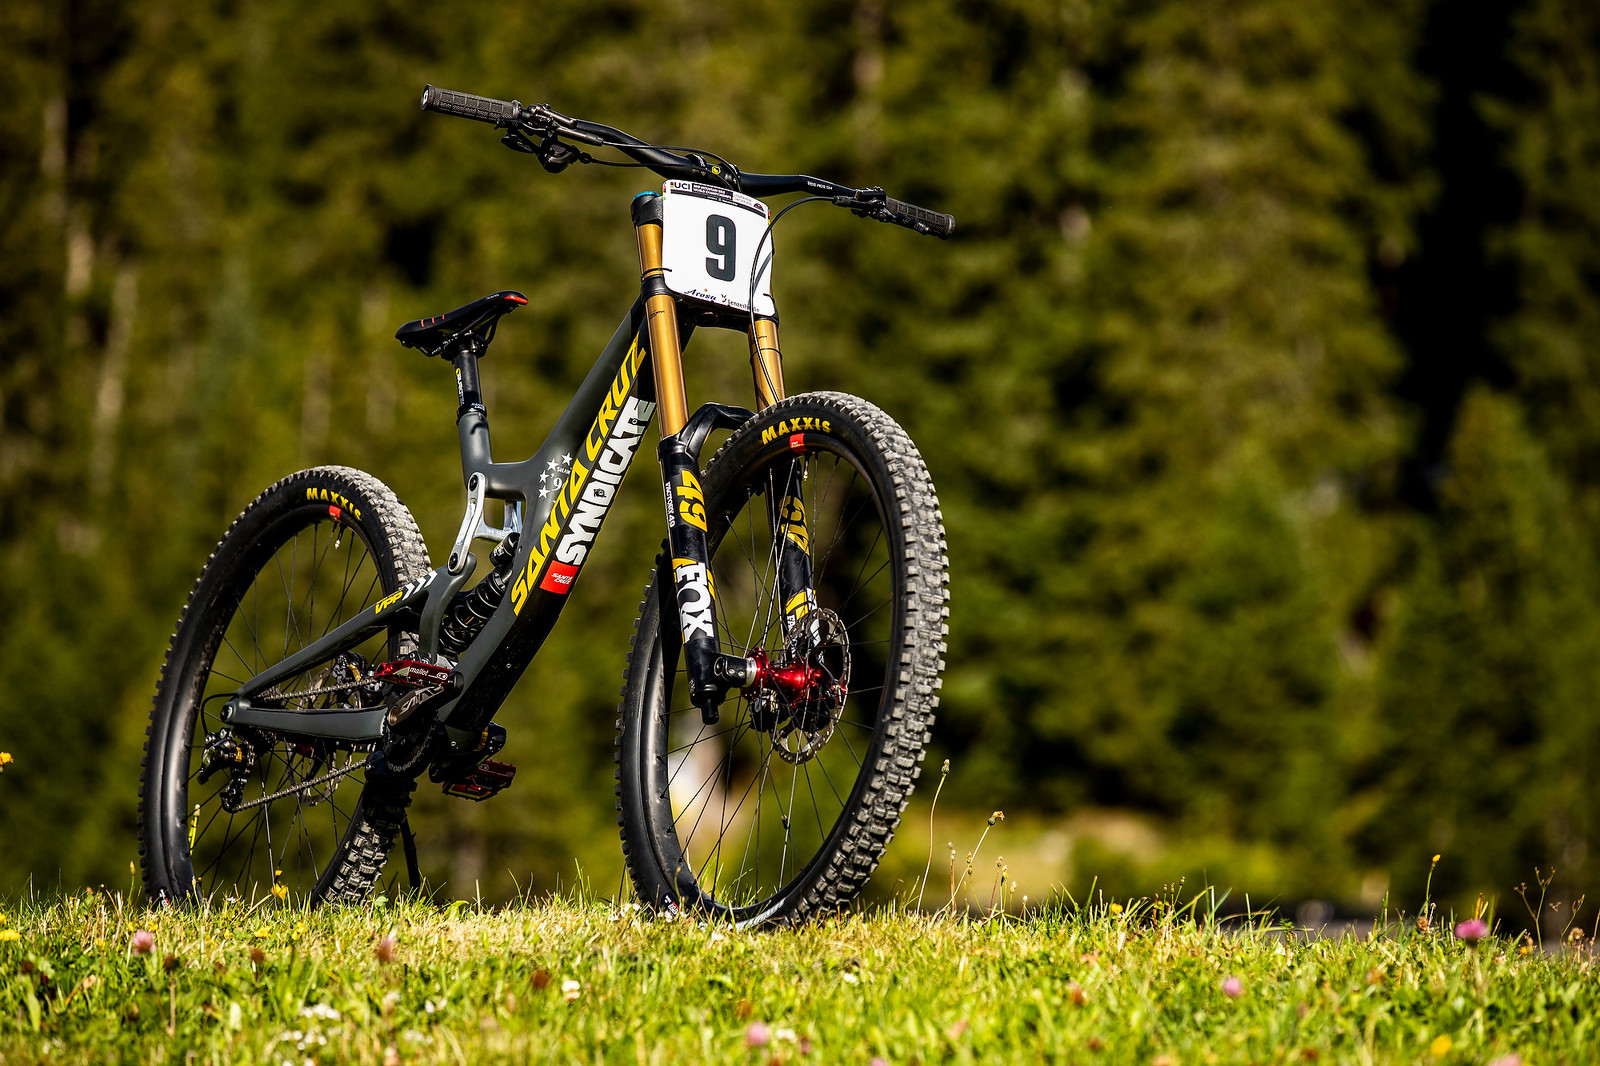 Under the Radar - Luca Shaw's Santa Cruz V10 World Champs Bike - WORLD CHAMPS BIKE - Luca Shaw's Santa Cruz V10 - Mountain Biking Pictures - Vital MTB